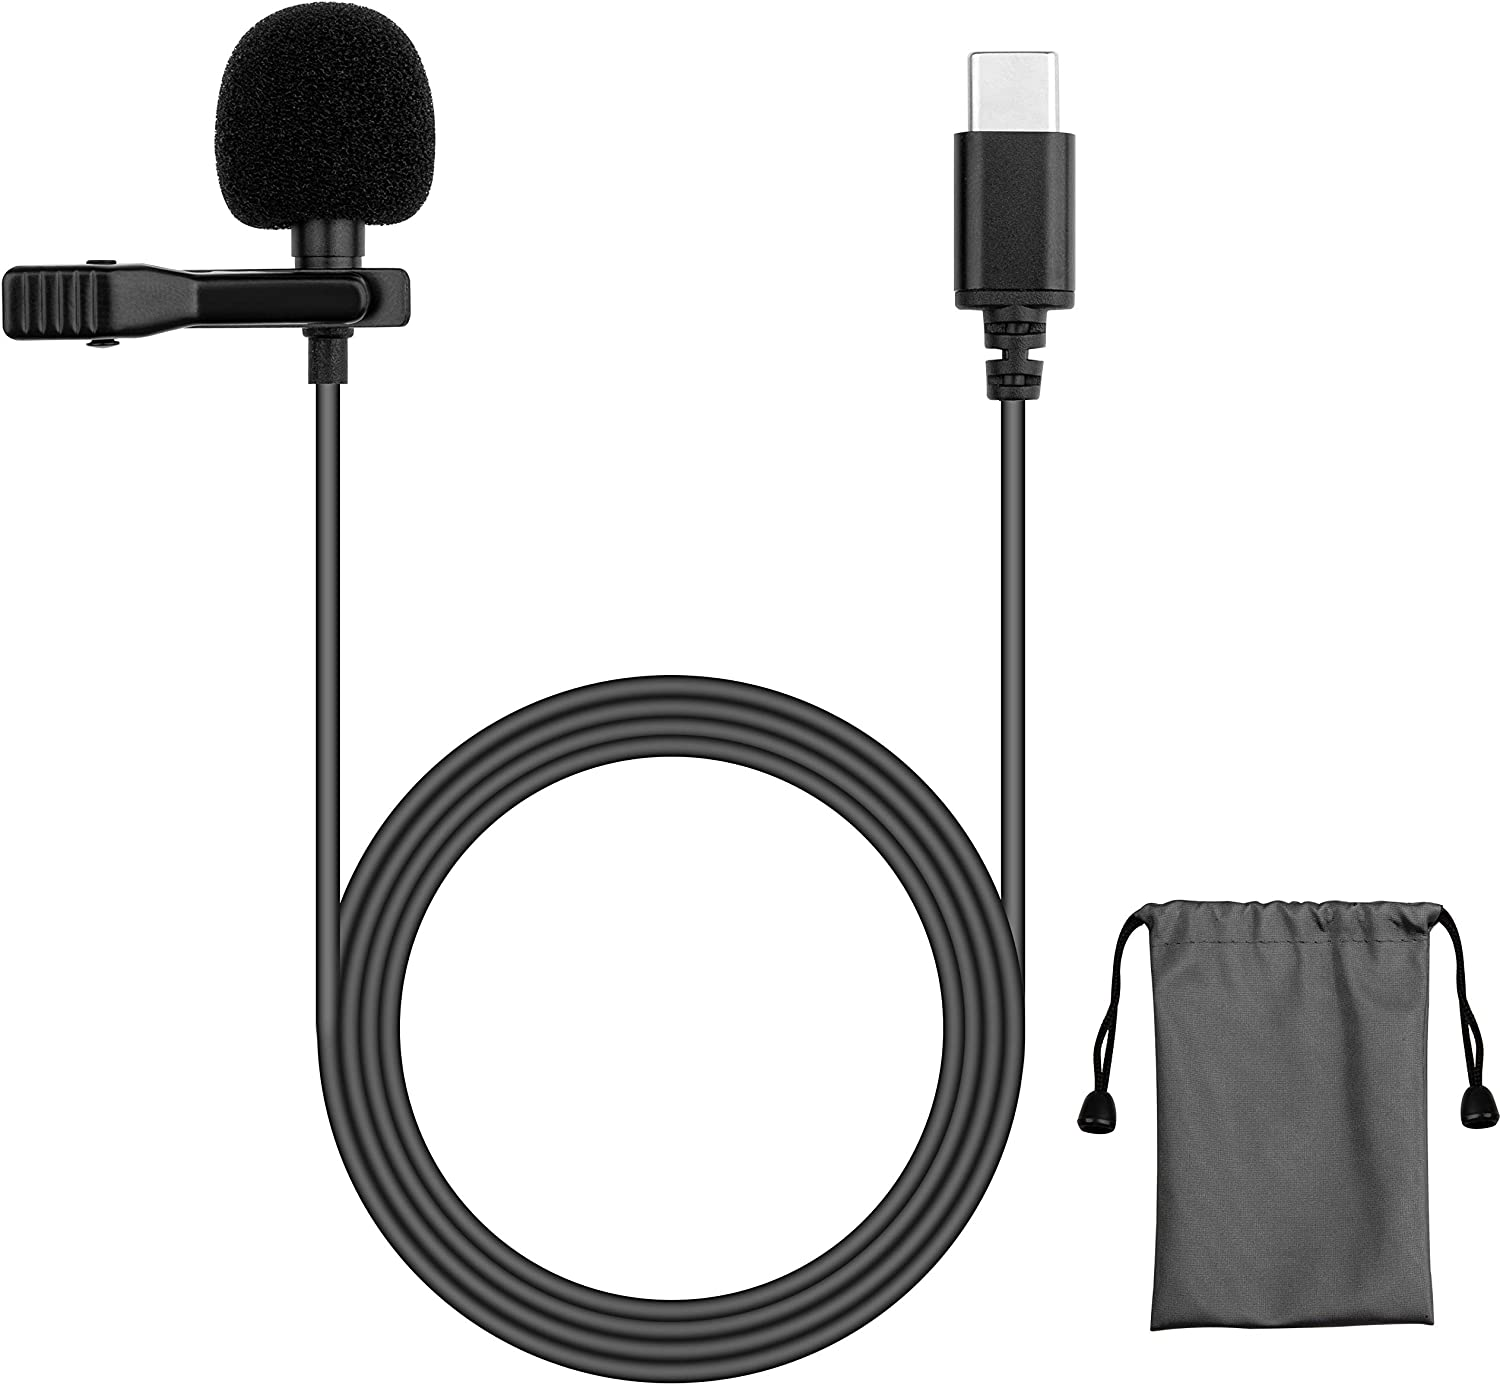 USB C Microphone Lavalier Clip Compatible with MacBook Pro Air Computer Android Samsung S20 S10 Google Pixel 3 4 XL for Zoom Call Meeting YouTube Record